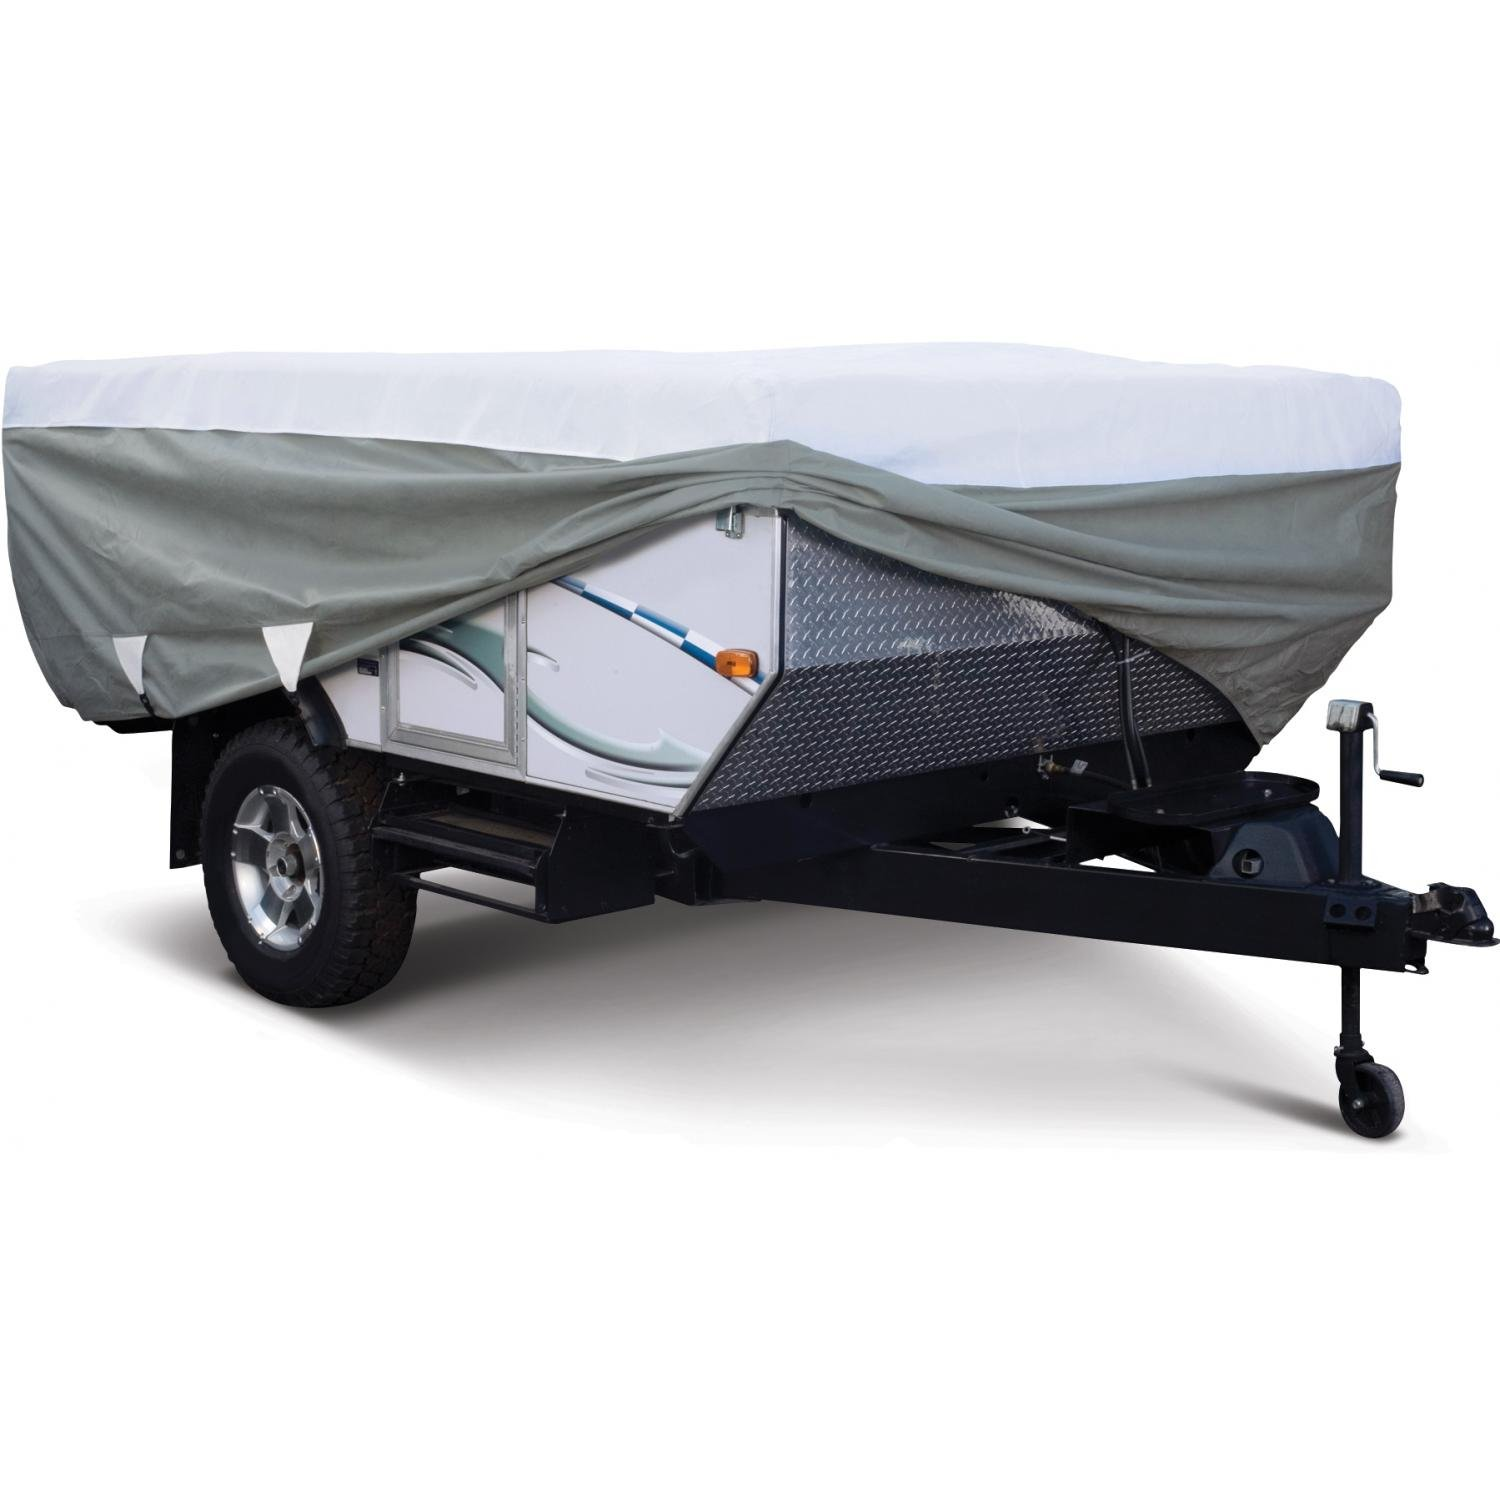 PolyPro3 Pop Up Camper Cover by Classic Accessories